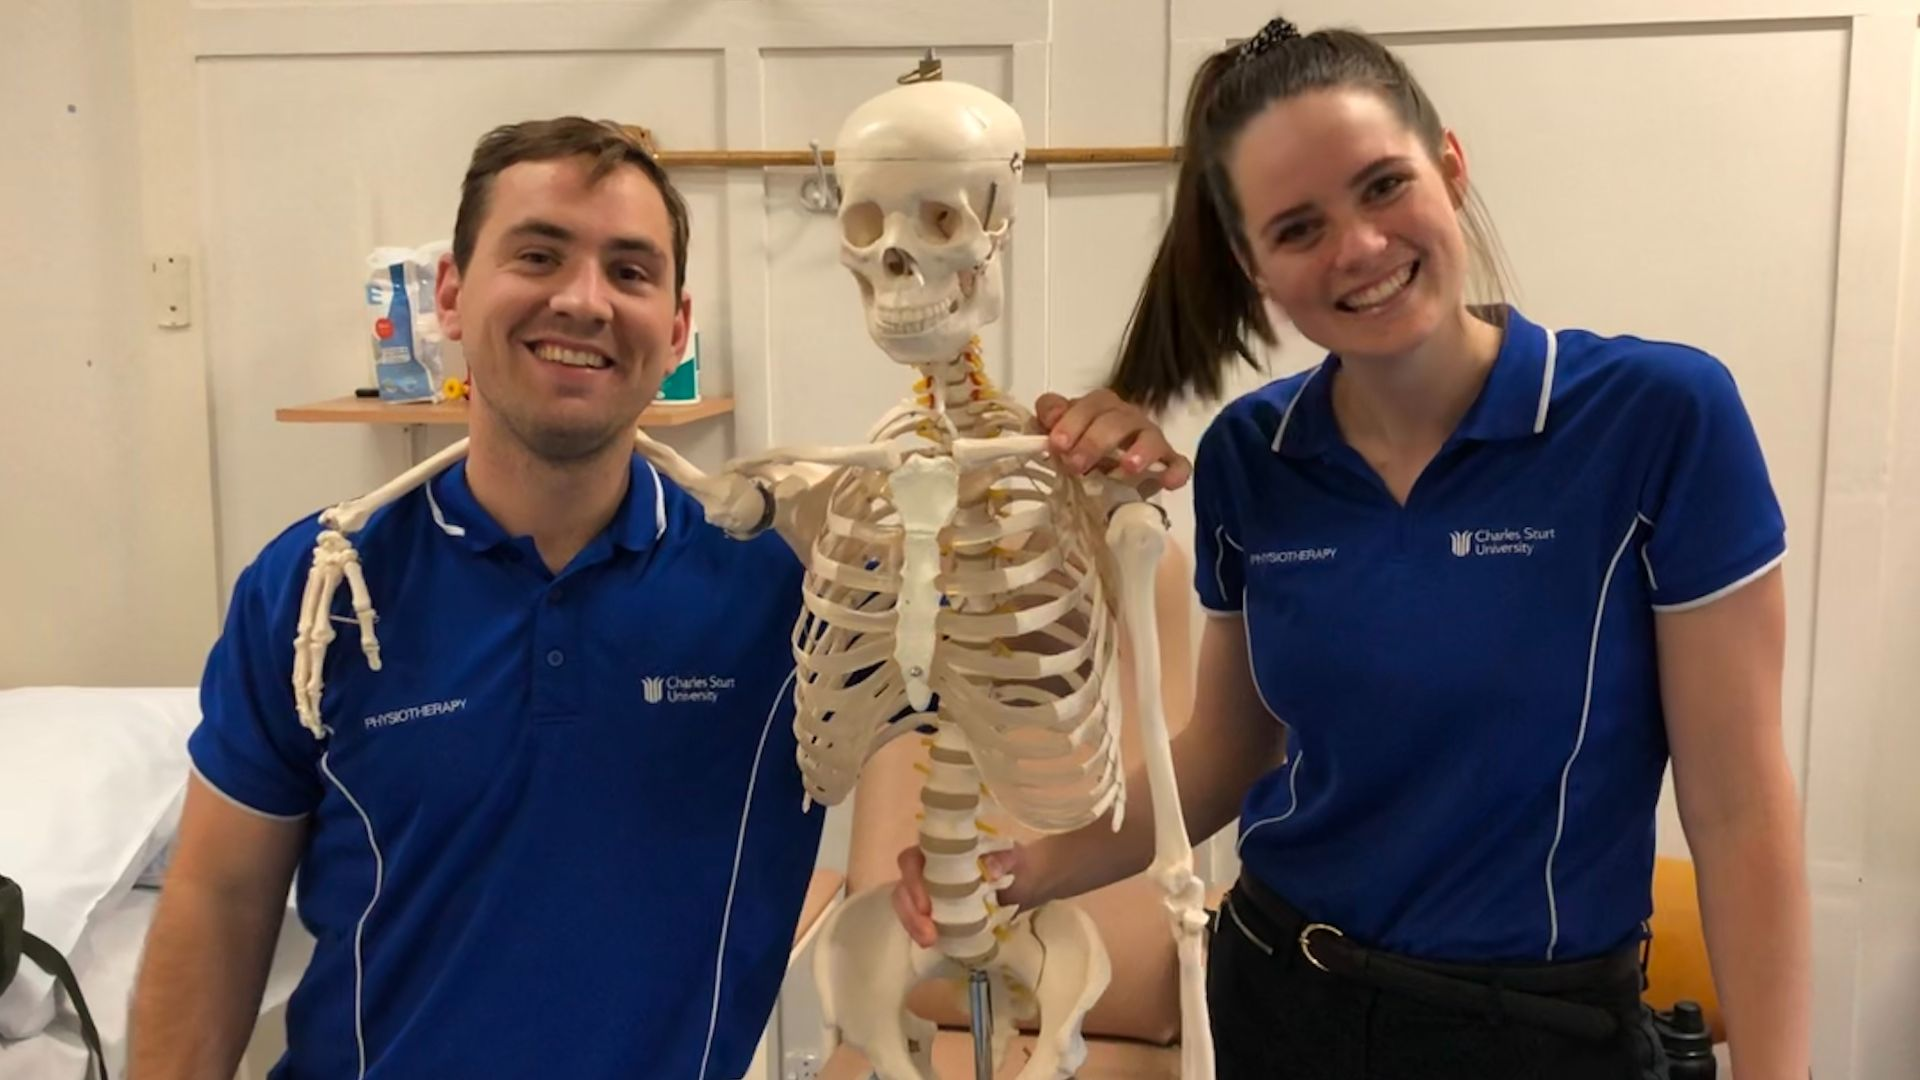 Port Macquarie physiotherapy graduate tops cohort and receives prestigious award